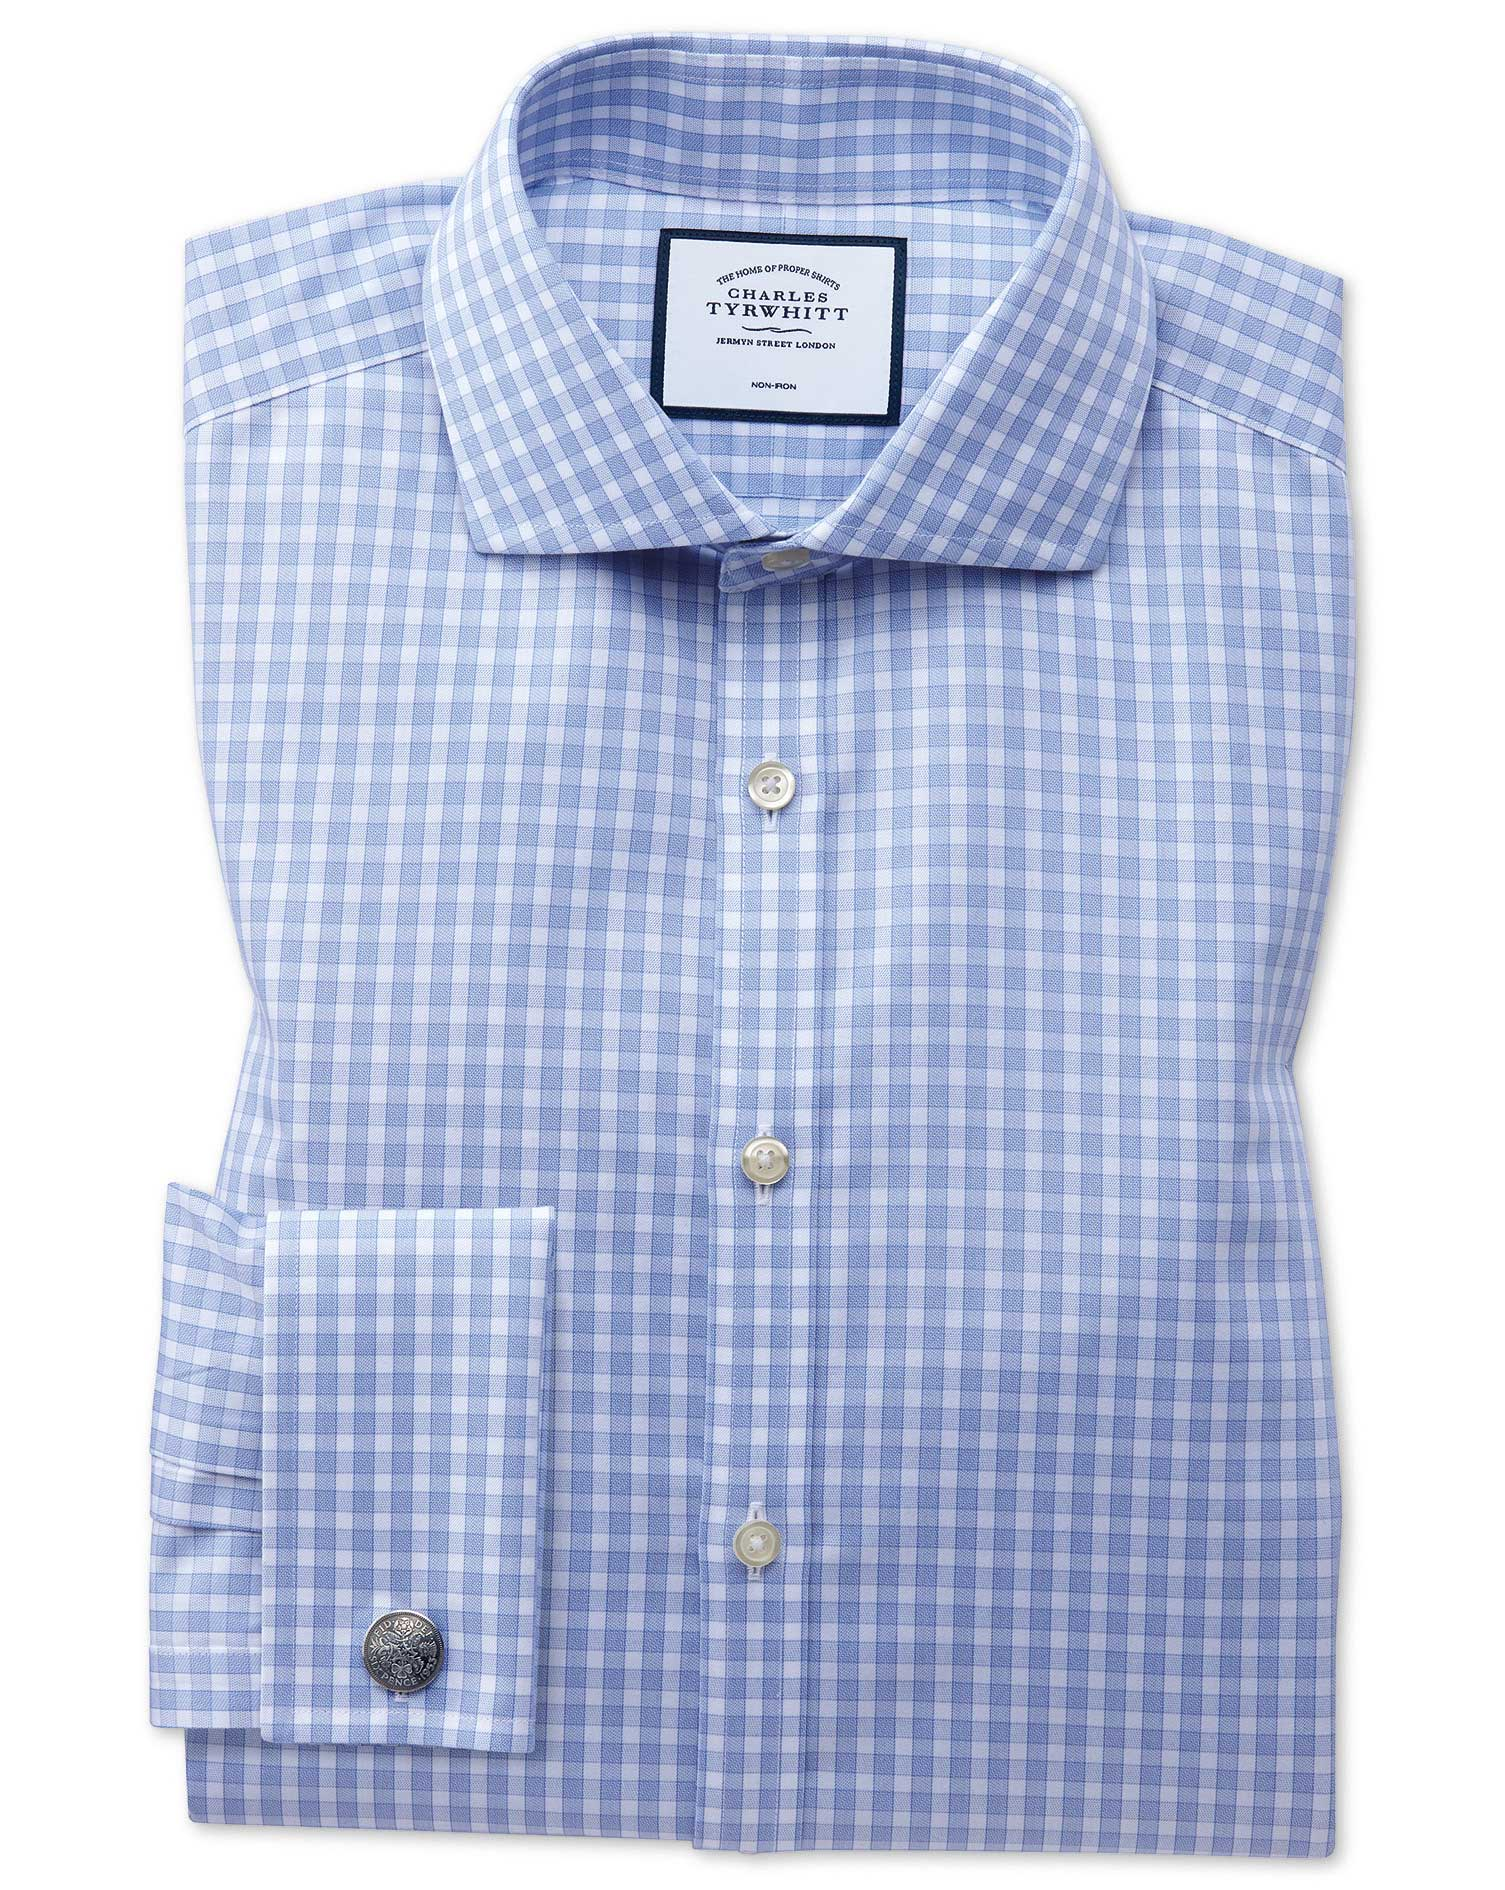 Extra Slim Fit Non-Iron Twill Gingham Sky Blue Cotton Formal Shirt Single Cuff Size 15.5/32 by Charl